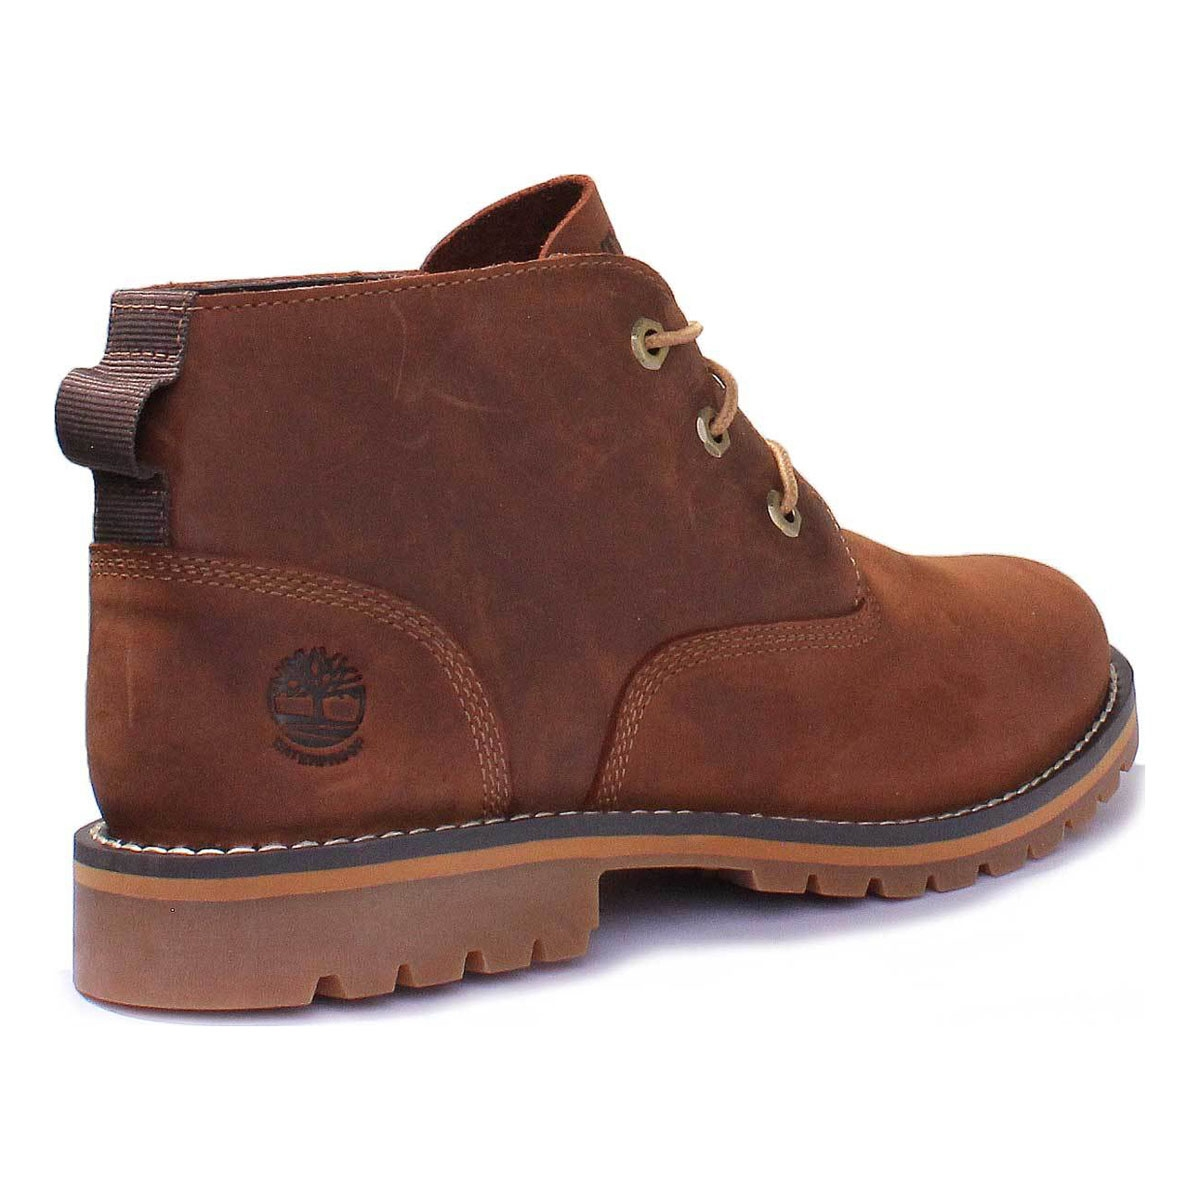 5e2b6071d08 Timberland Earthkeepers Larchmont WP Waterproof Chukka Boots (Men's) -  Glazed Ginger